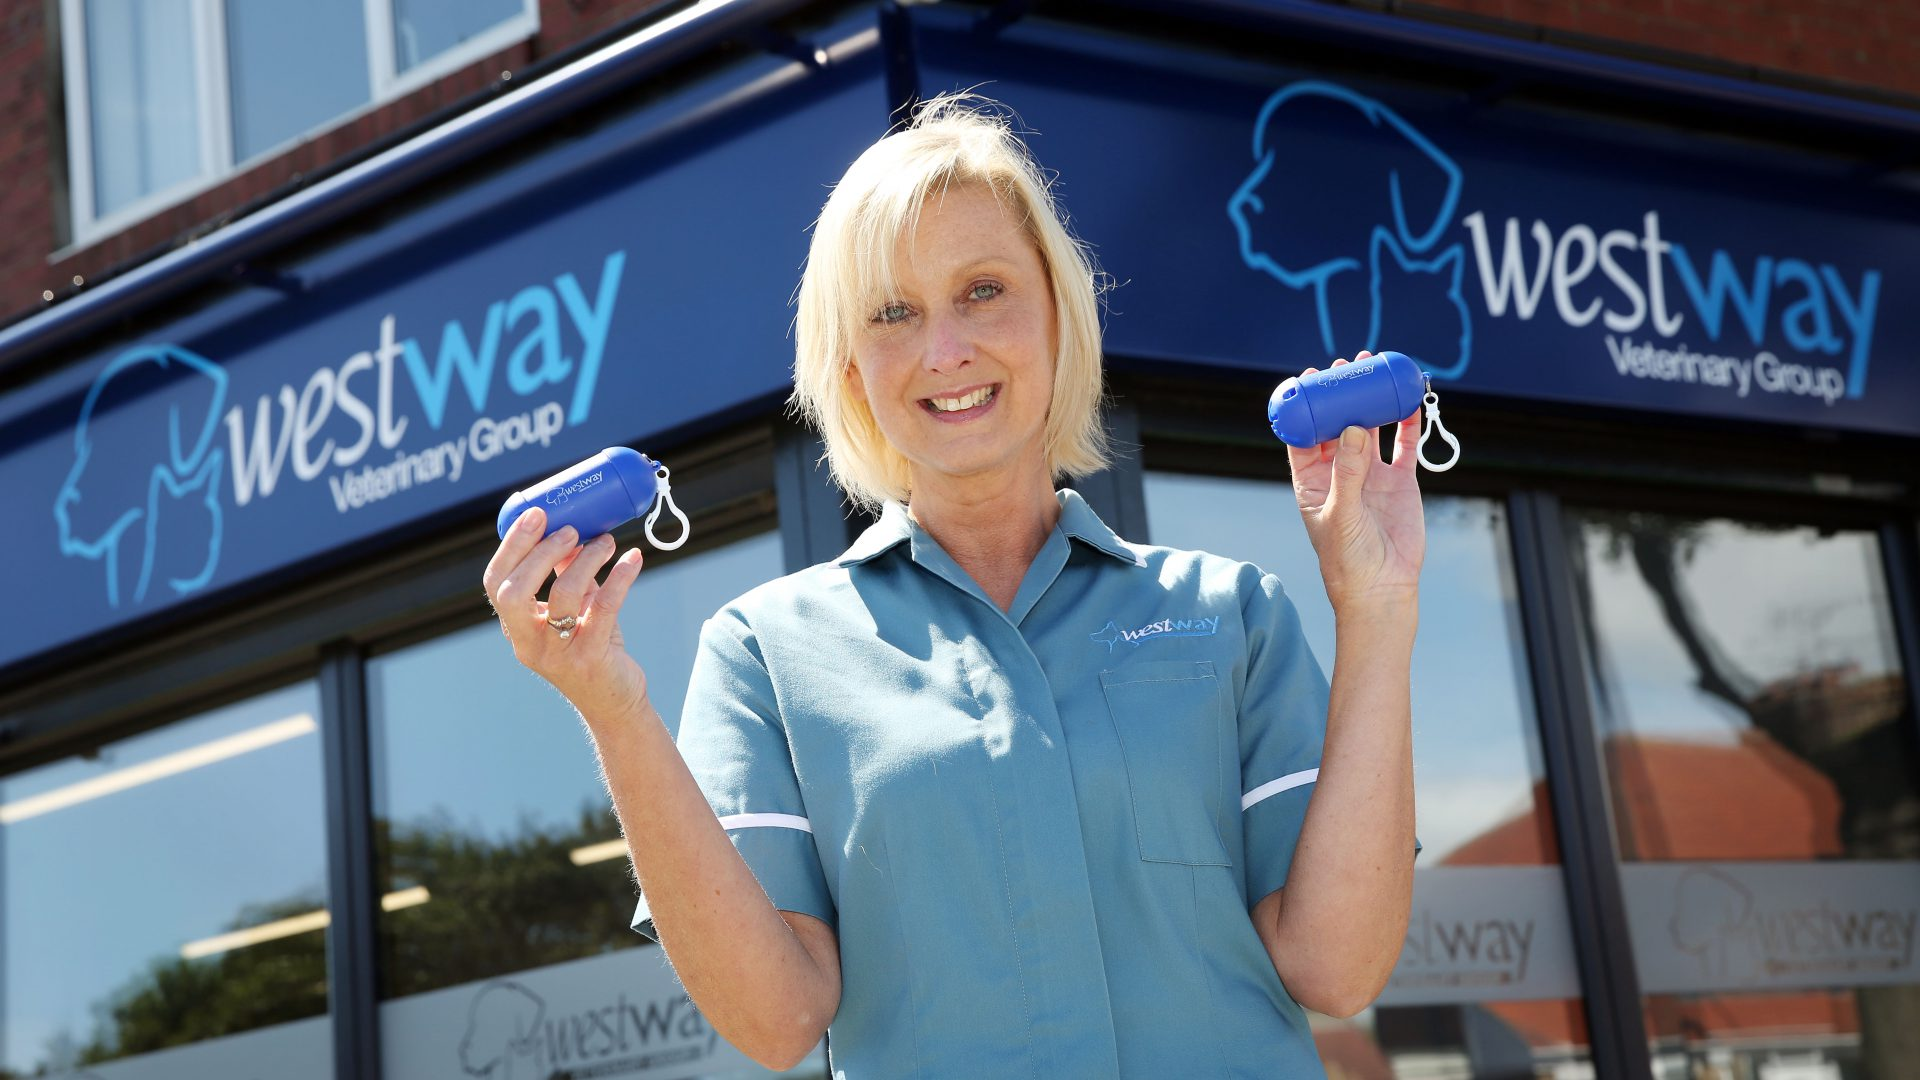 Whitley Bay vets commended for campaign to clear streets of dog poo